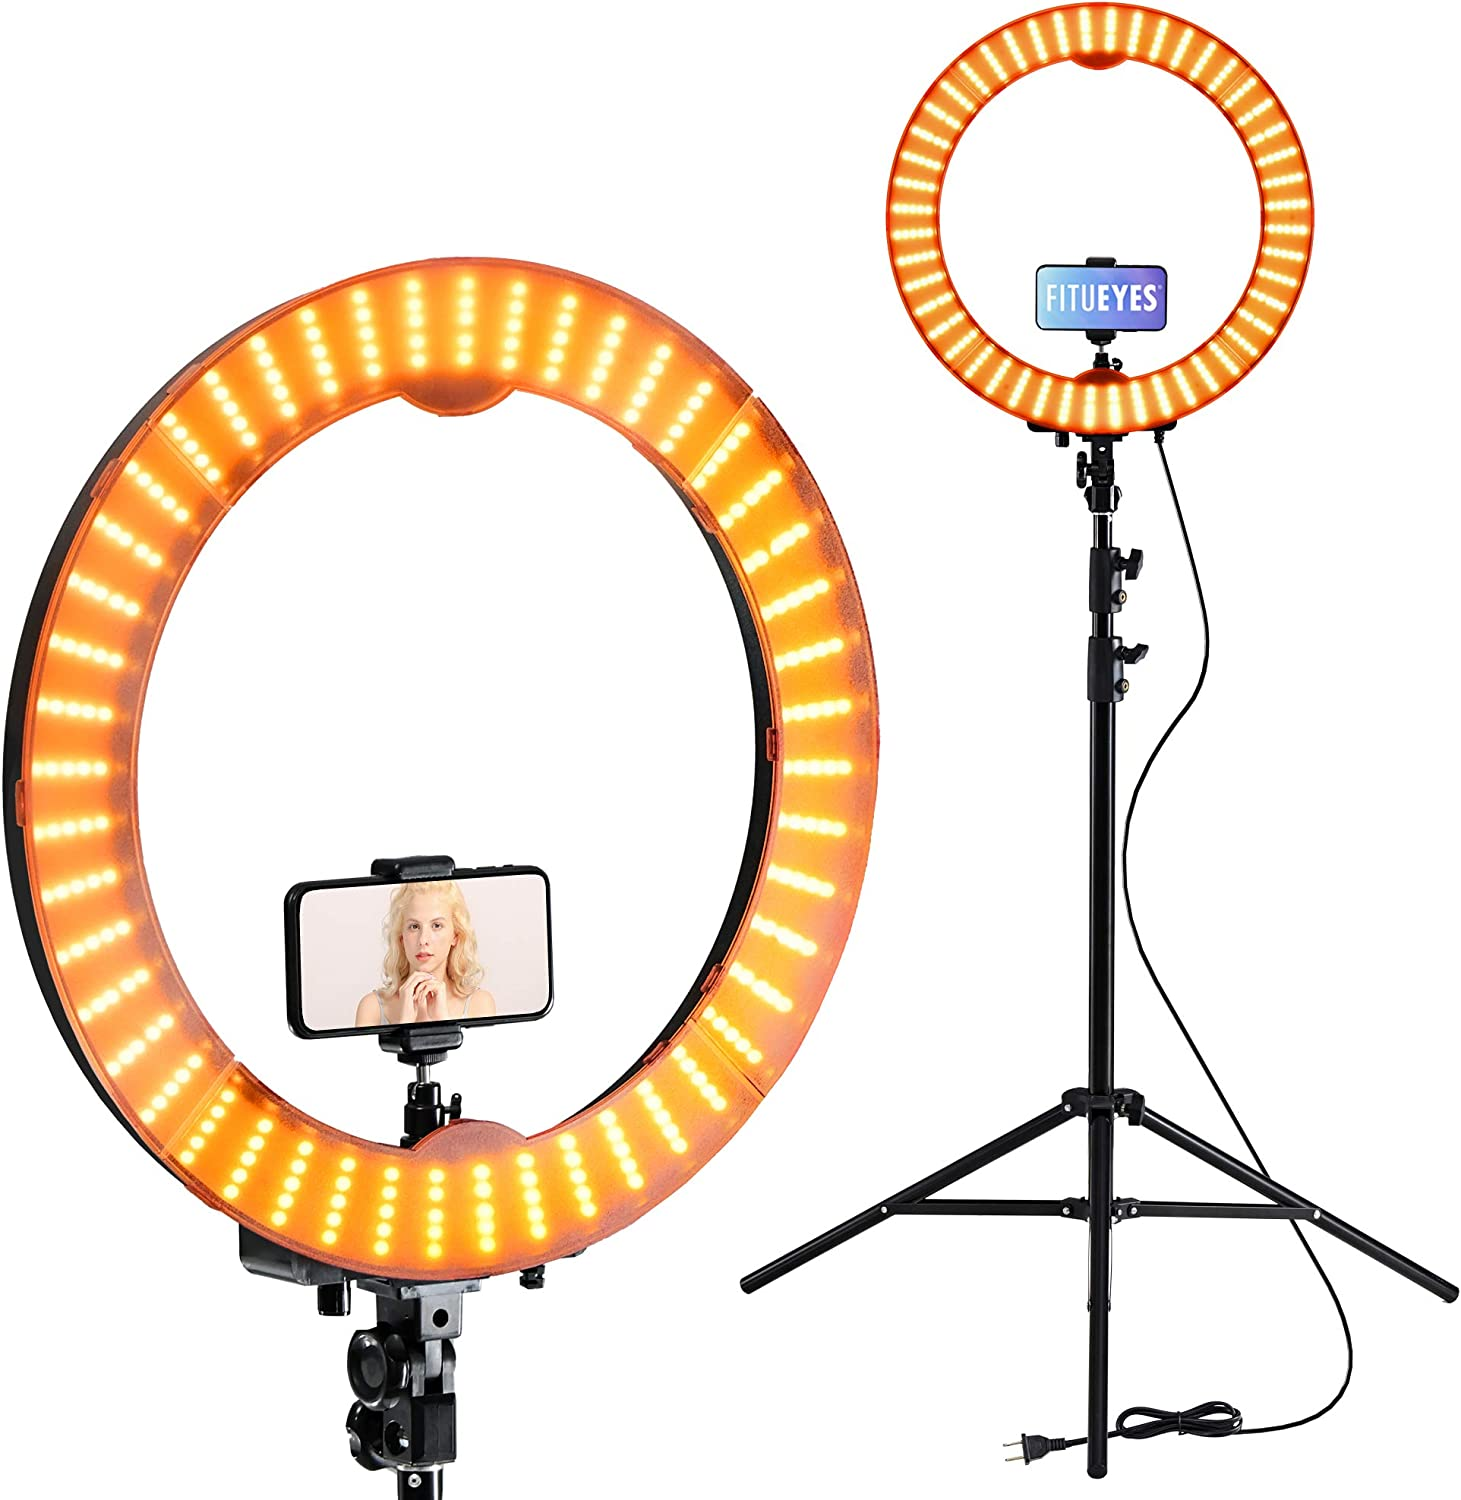 18 Inch Ring Light Stand 5500K with Stands Lights Cell 5 ☆ very popular Led List price